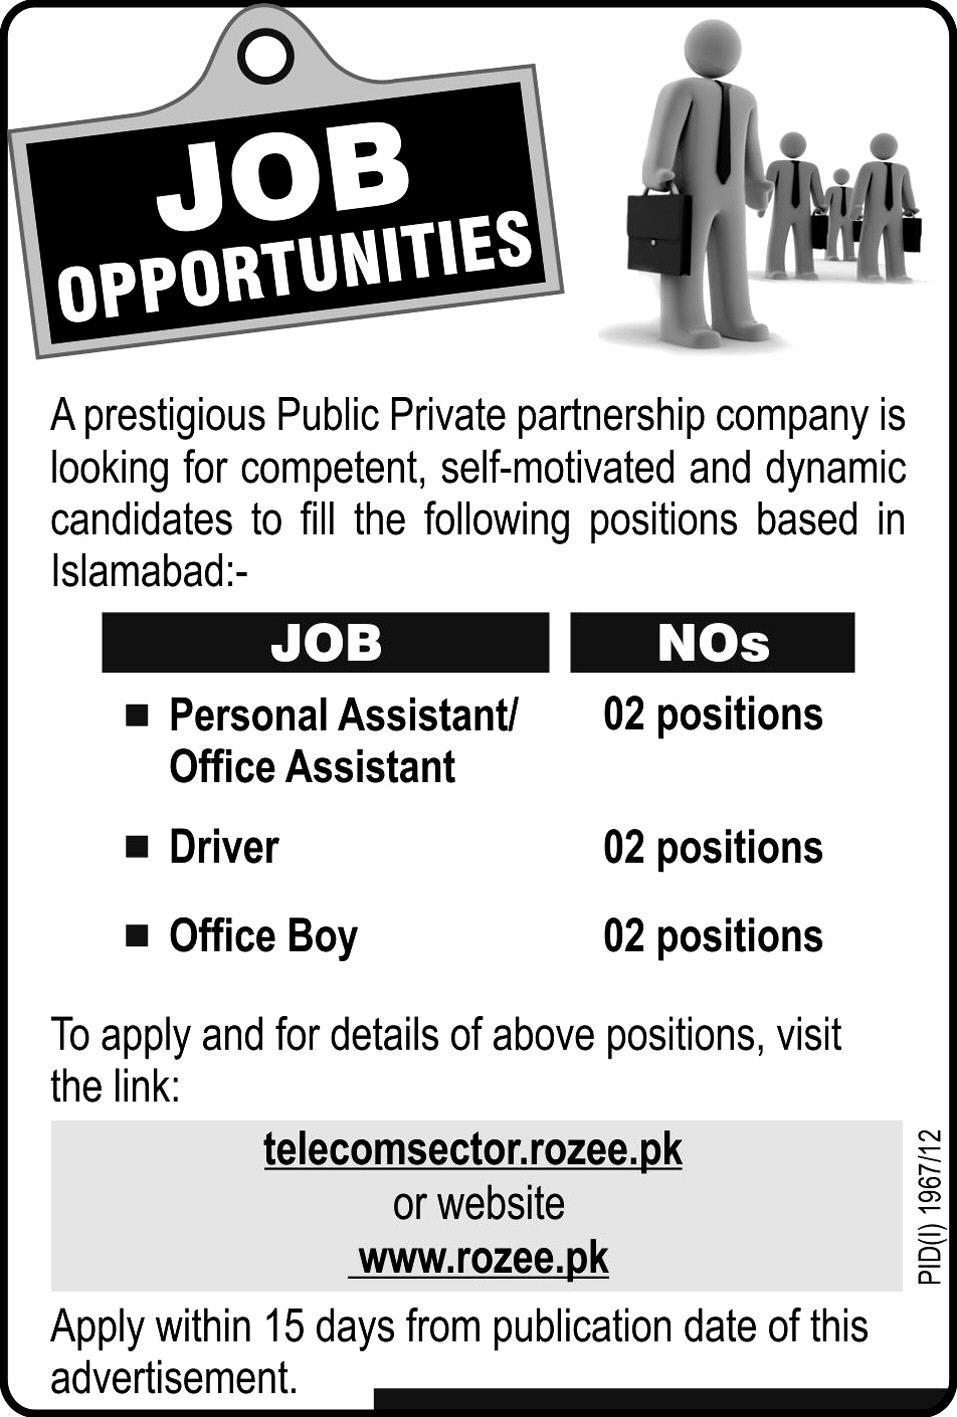 job opportunities for the blind